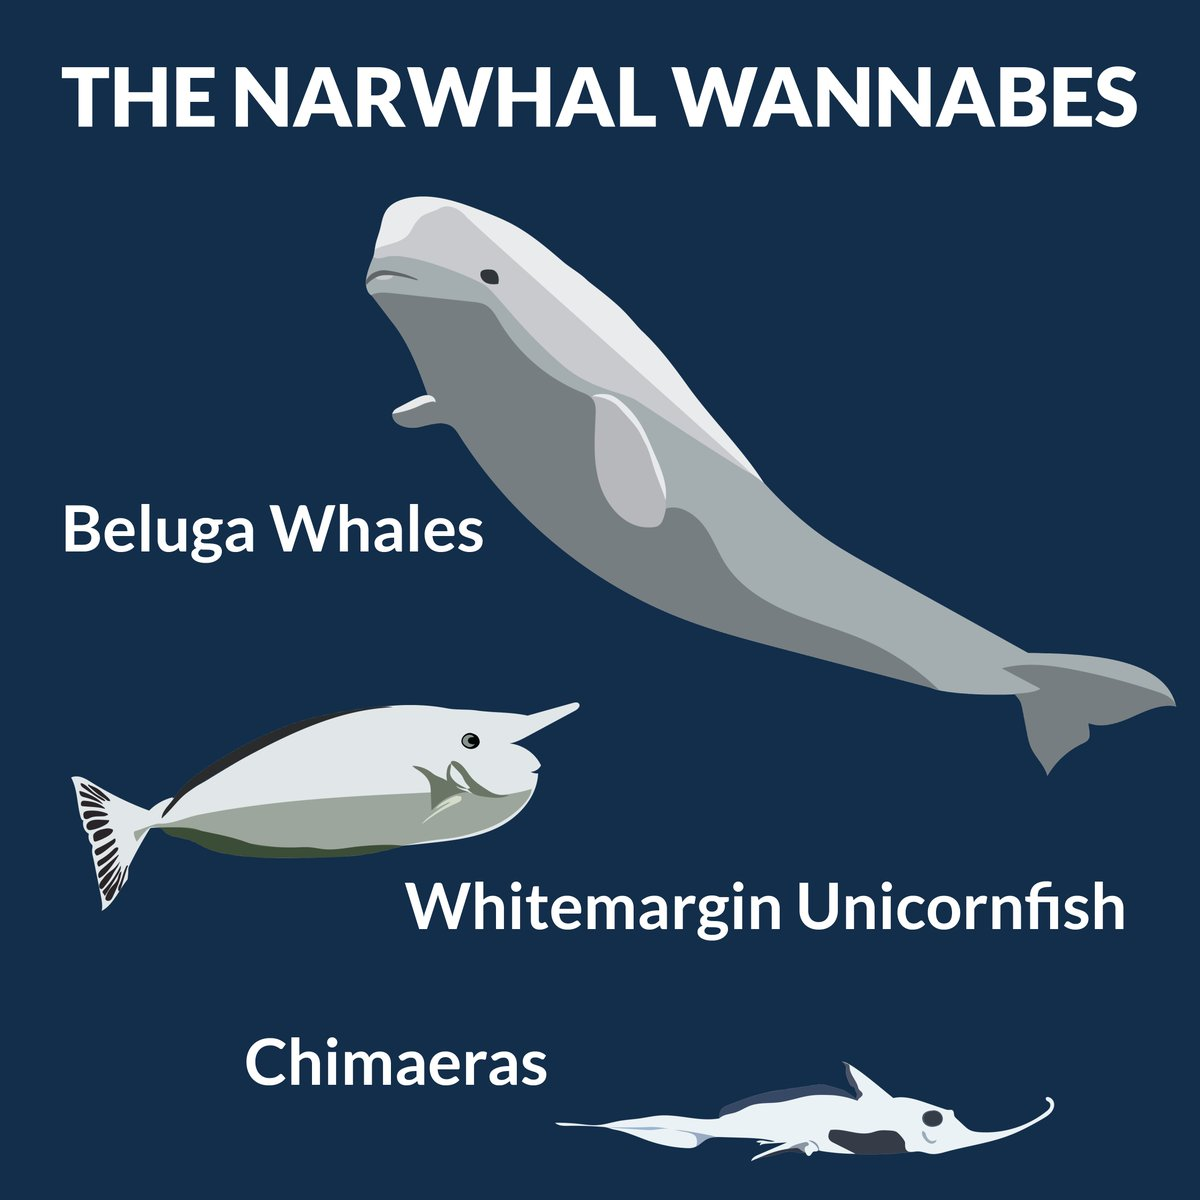 narwhalweek hashtag on twitter